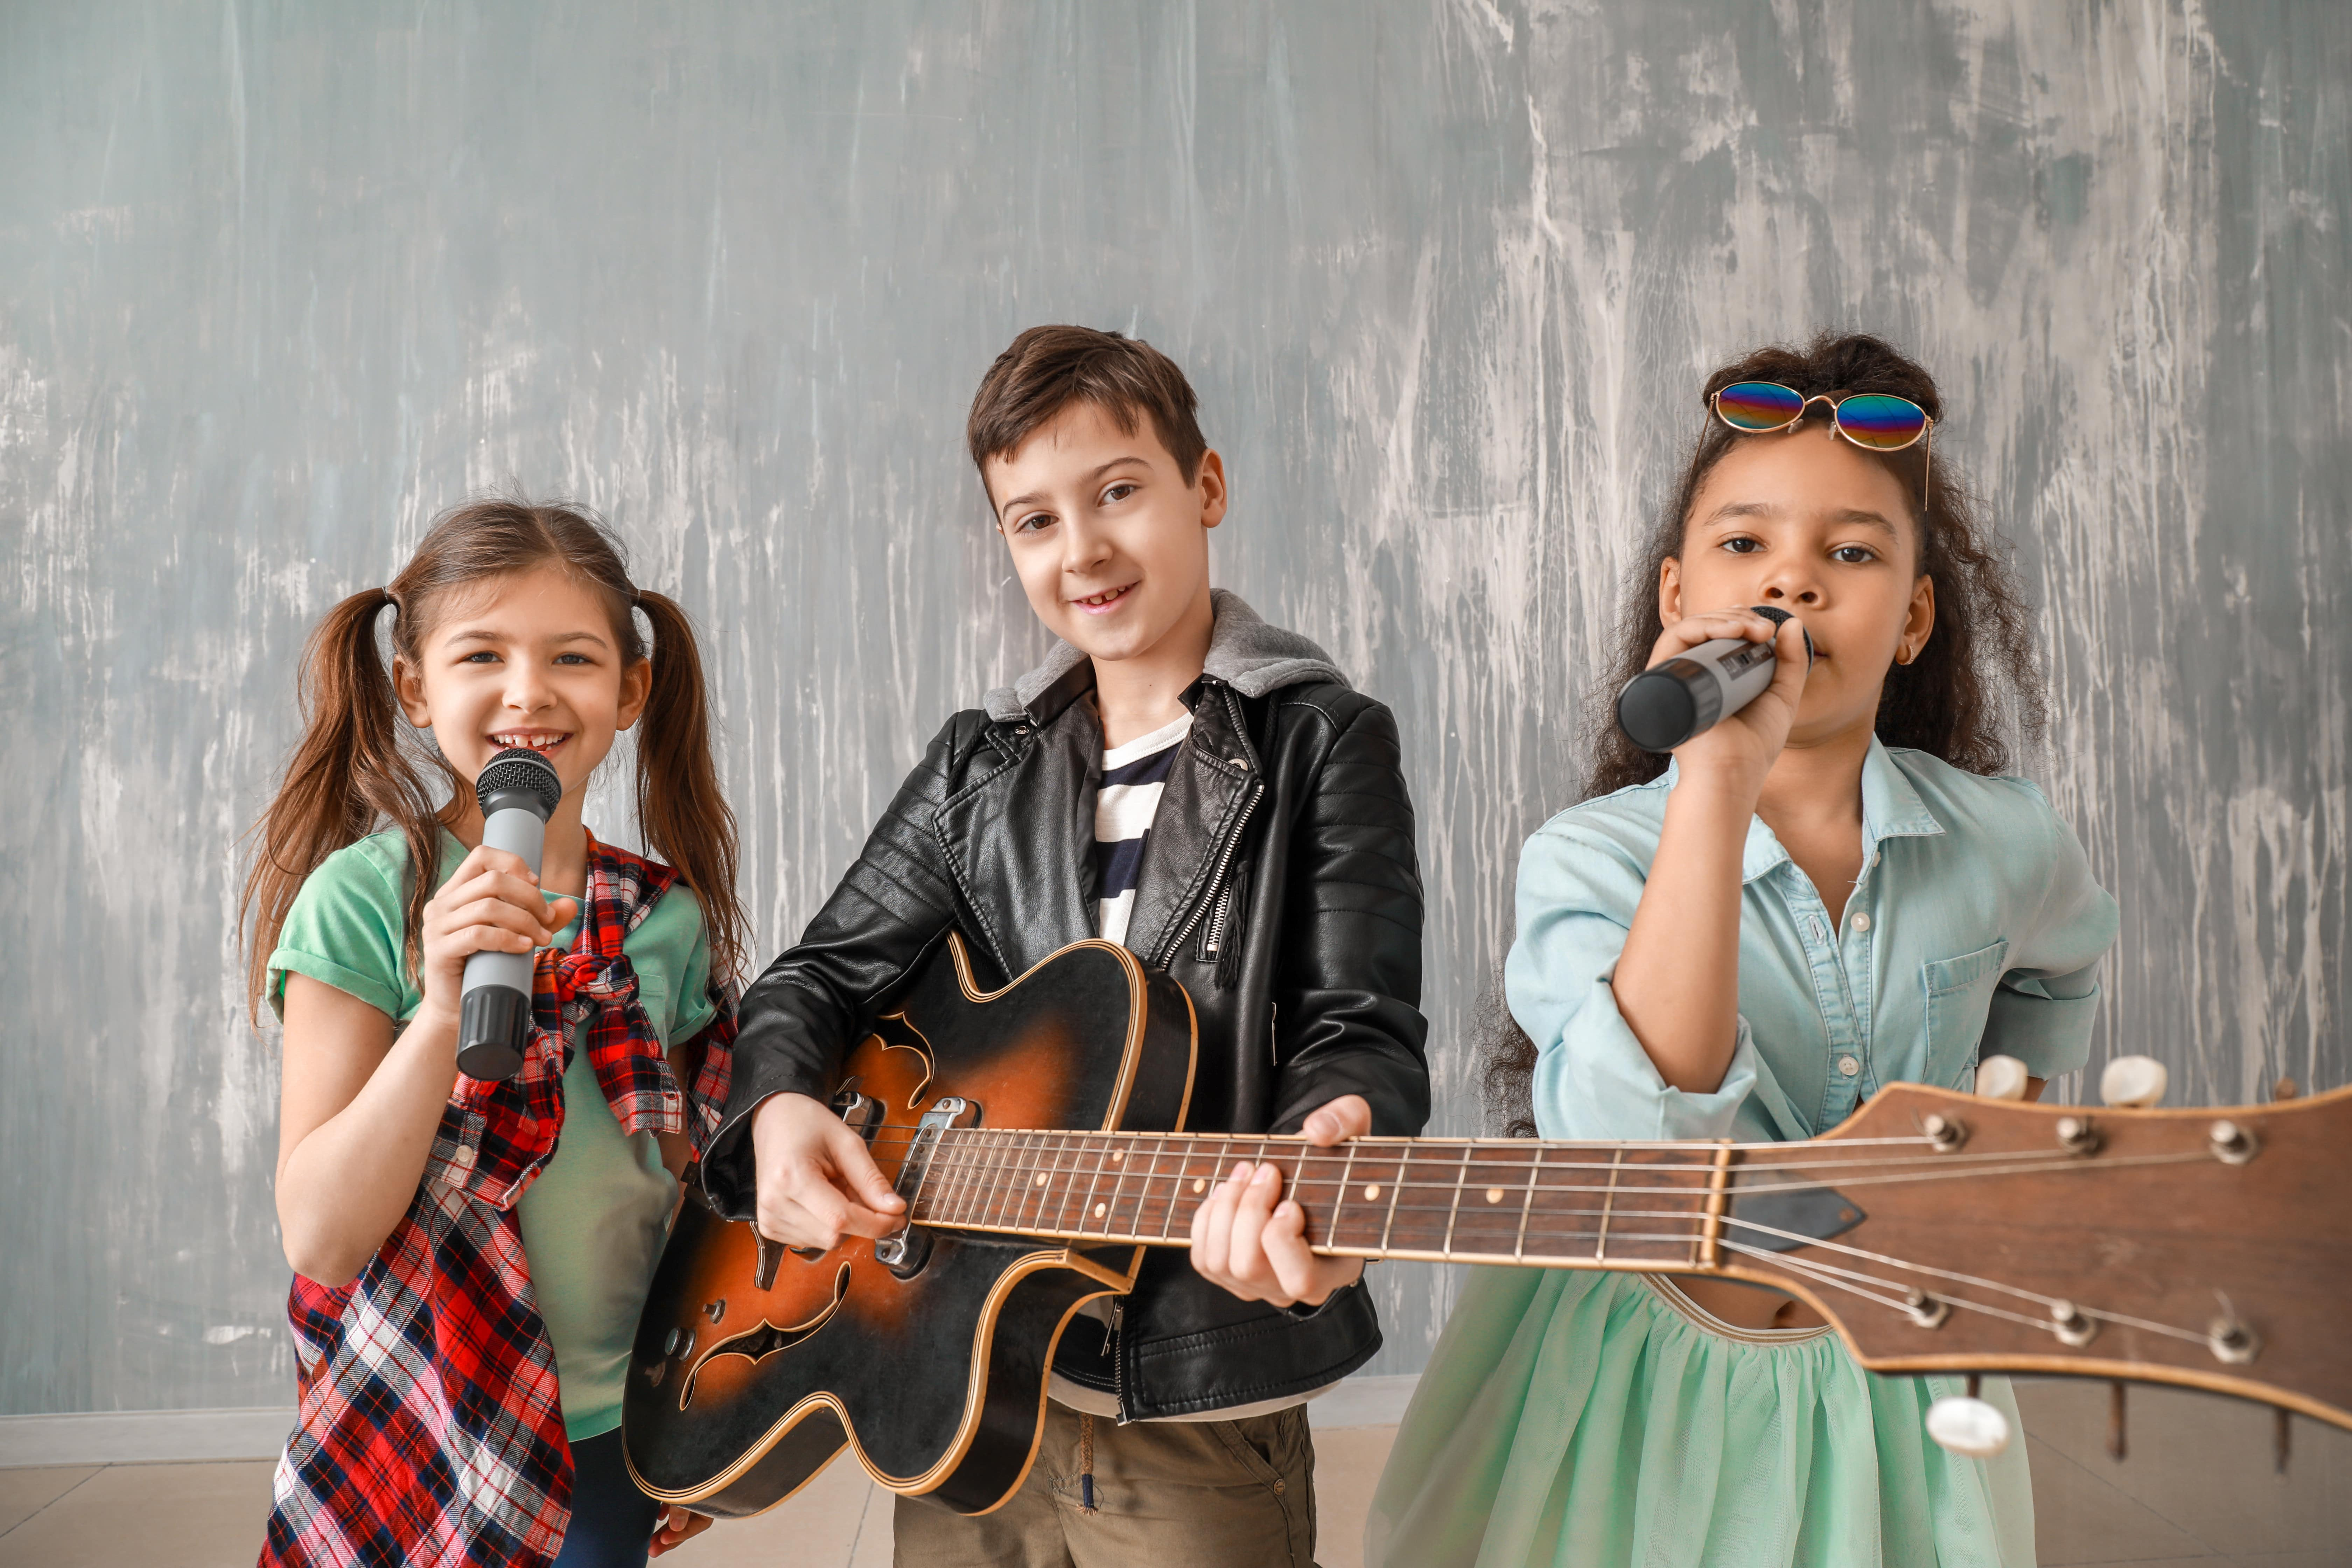 rock bands for kids and adults near me in oakhurst nj